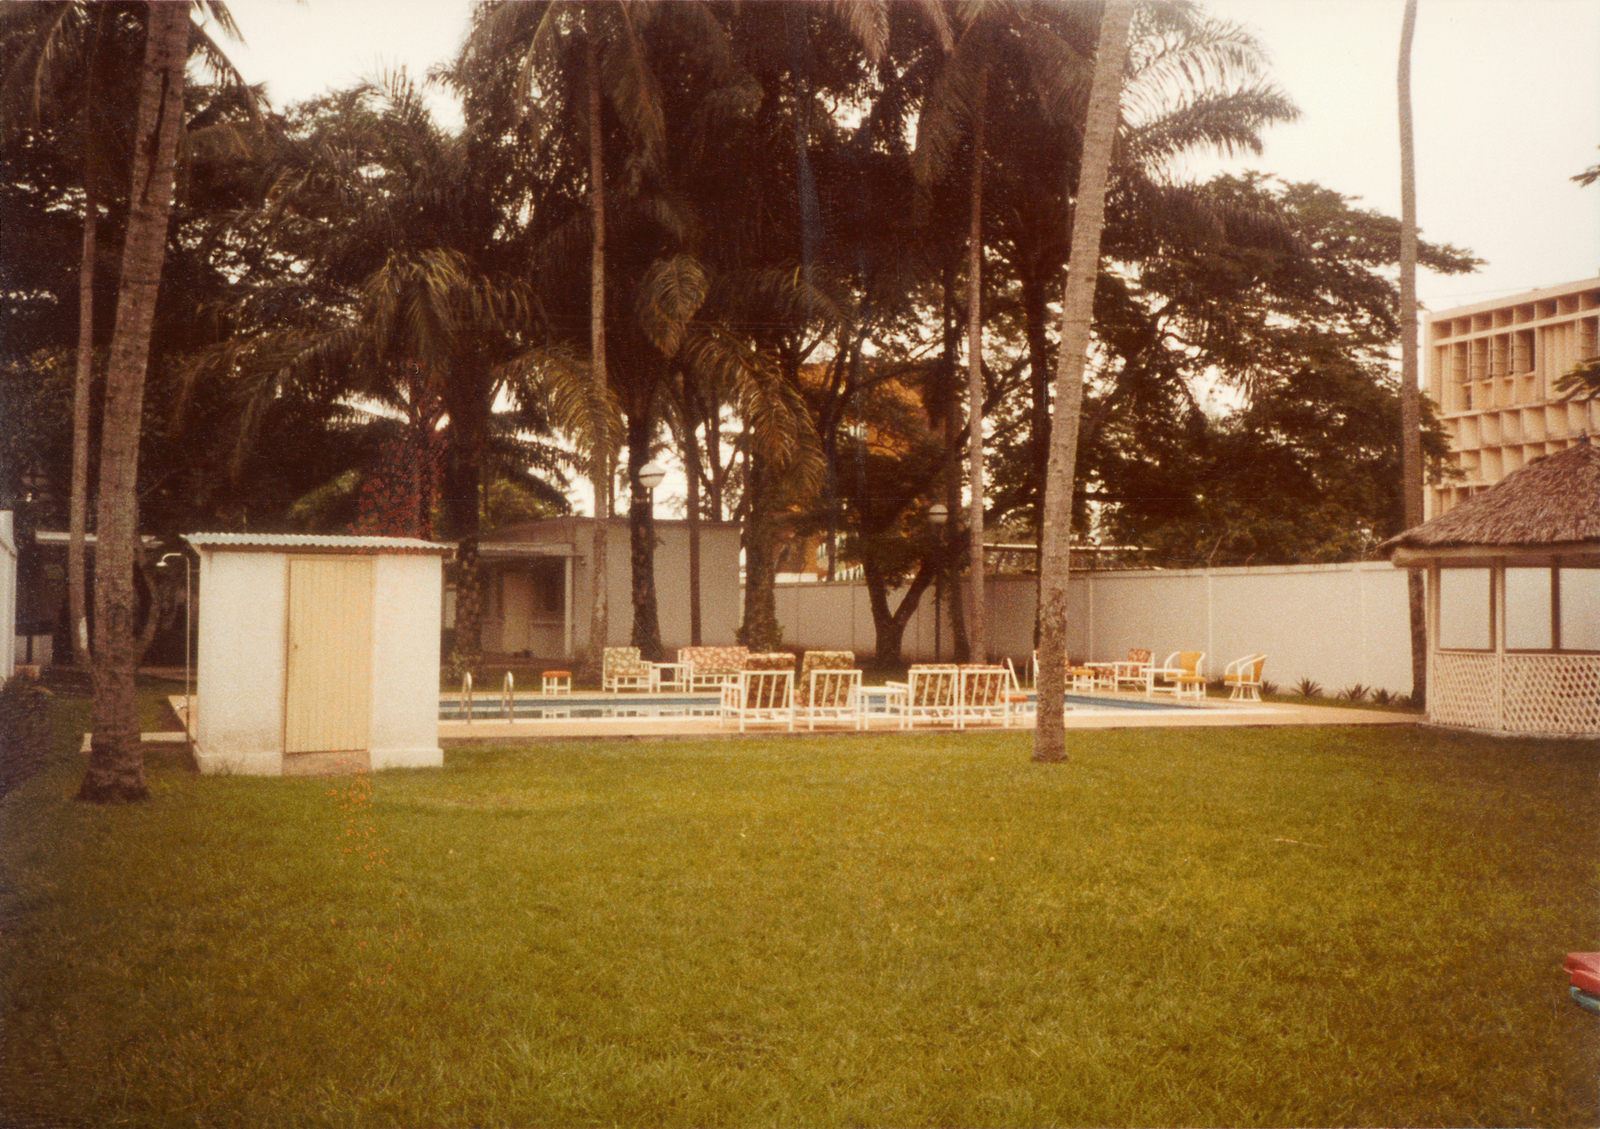 Brazzaville - Recreation/Community Center/Gym/Theater - 1986